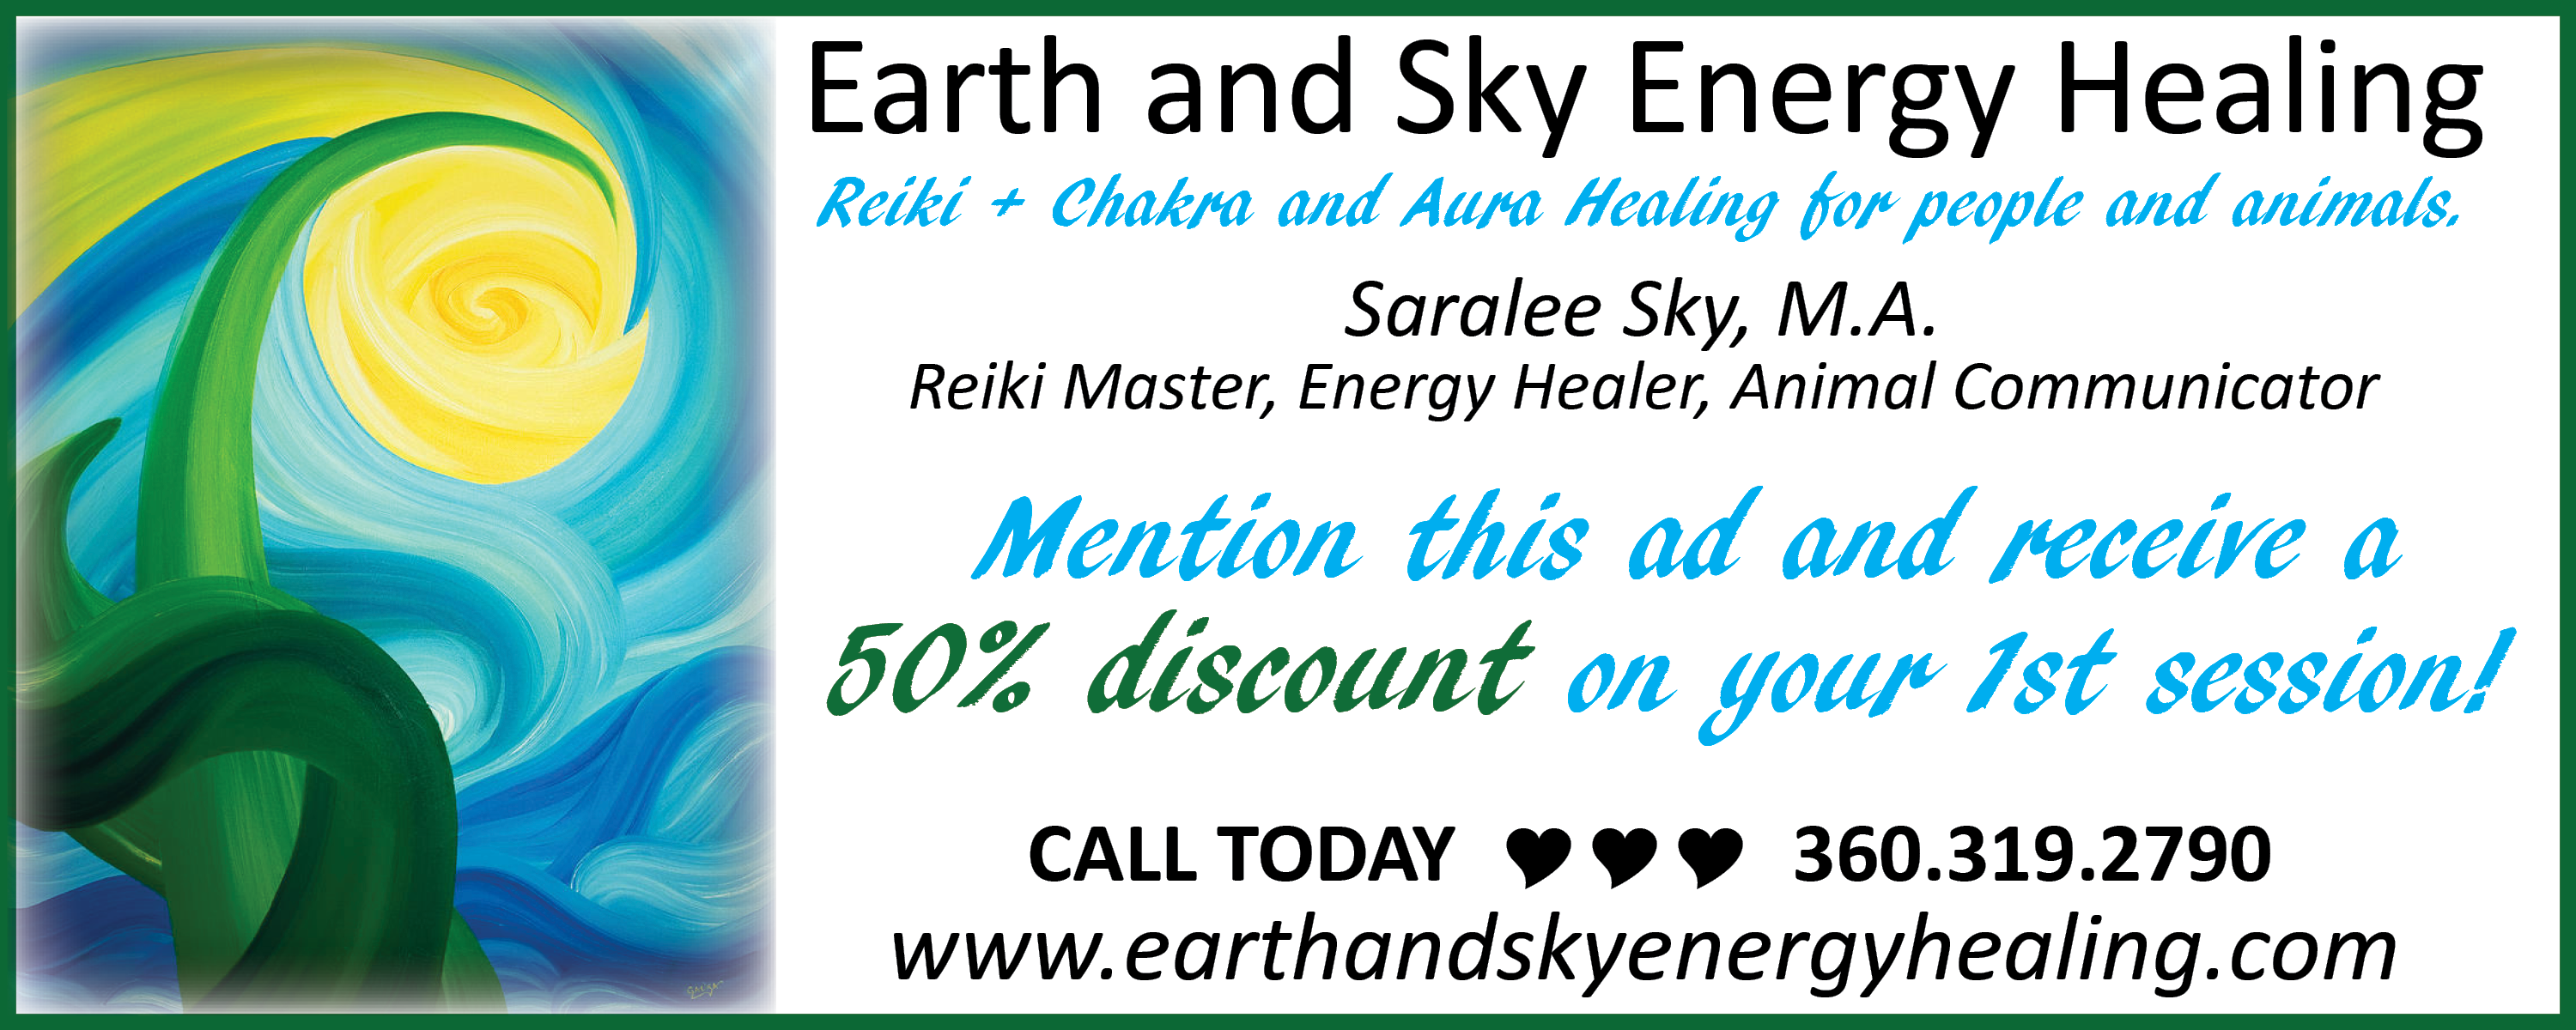 Earth and Sky Energy Healing